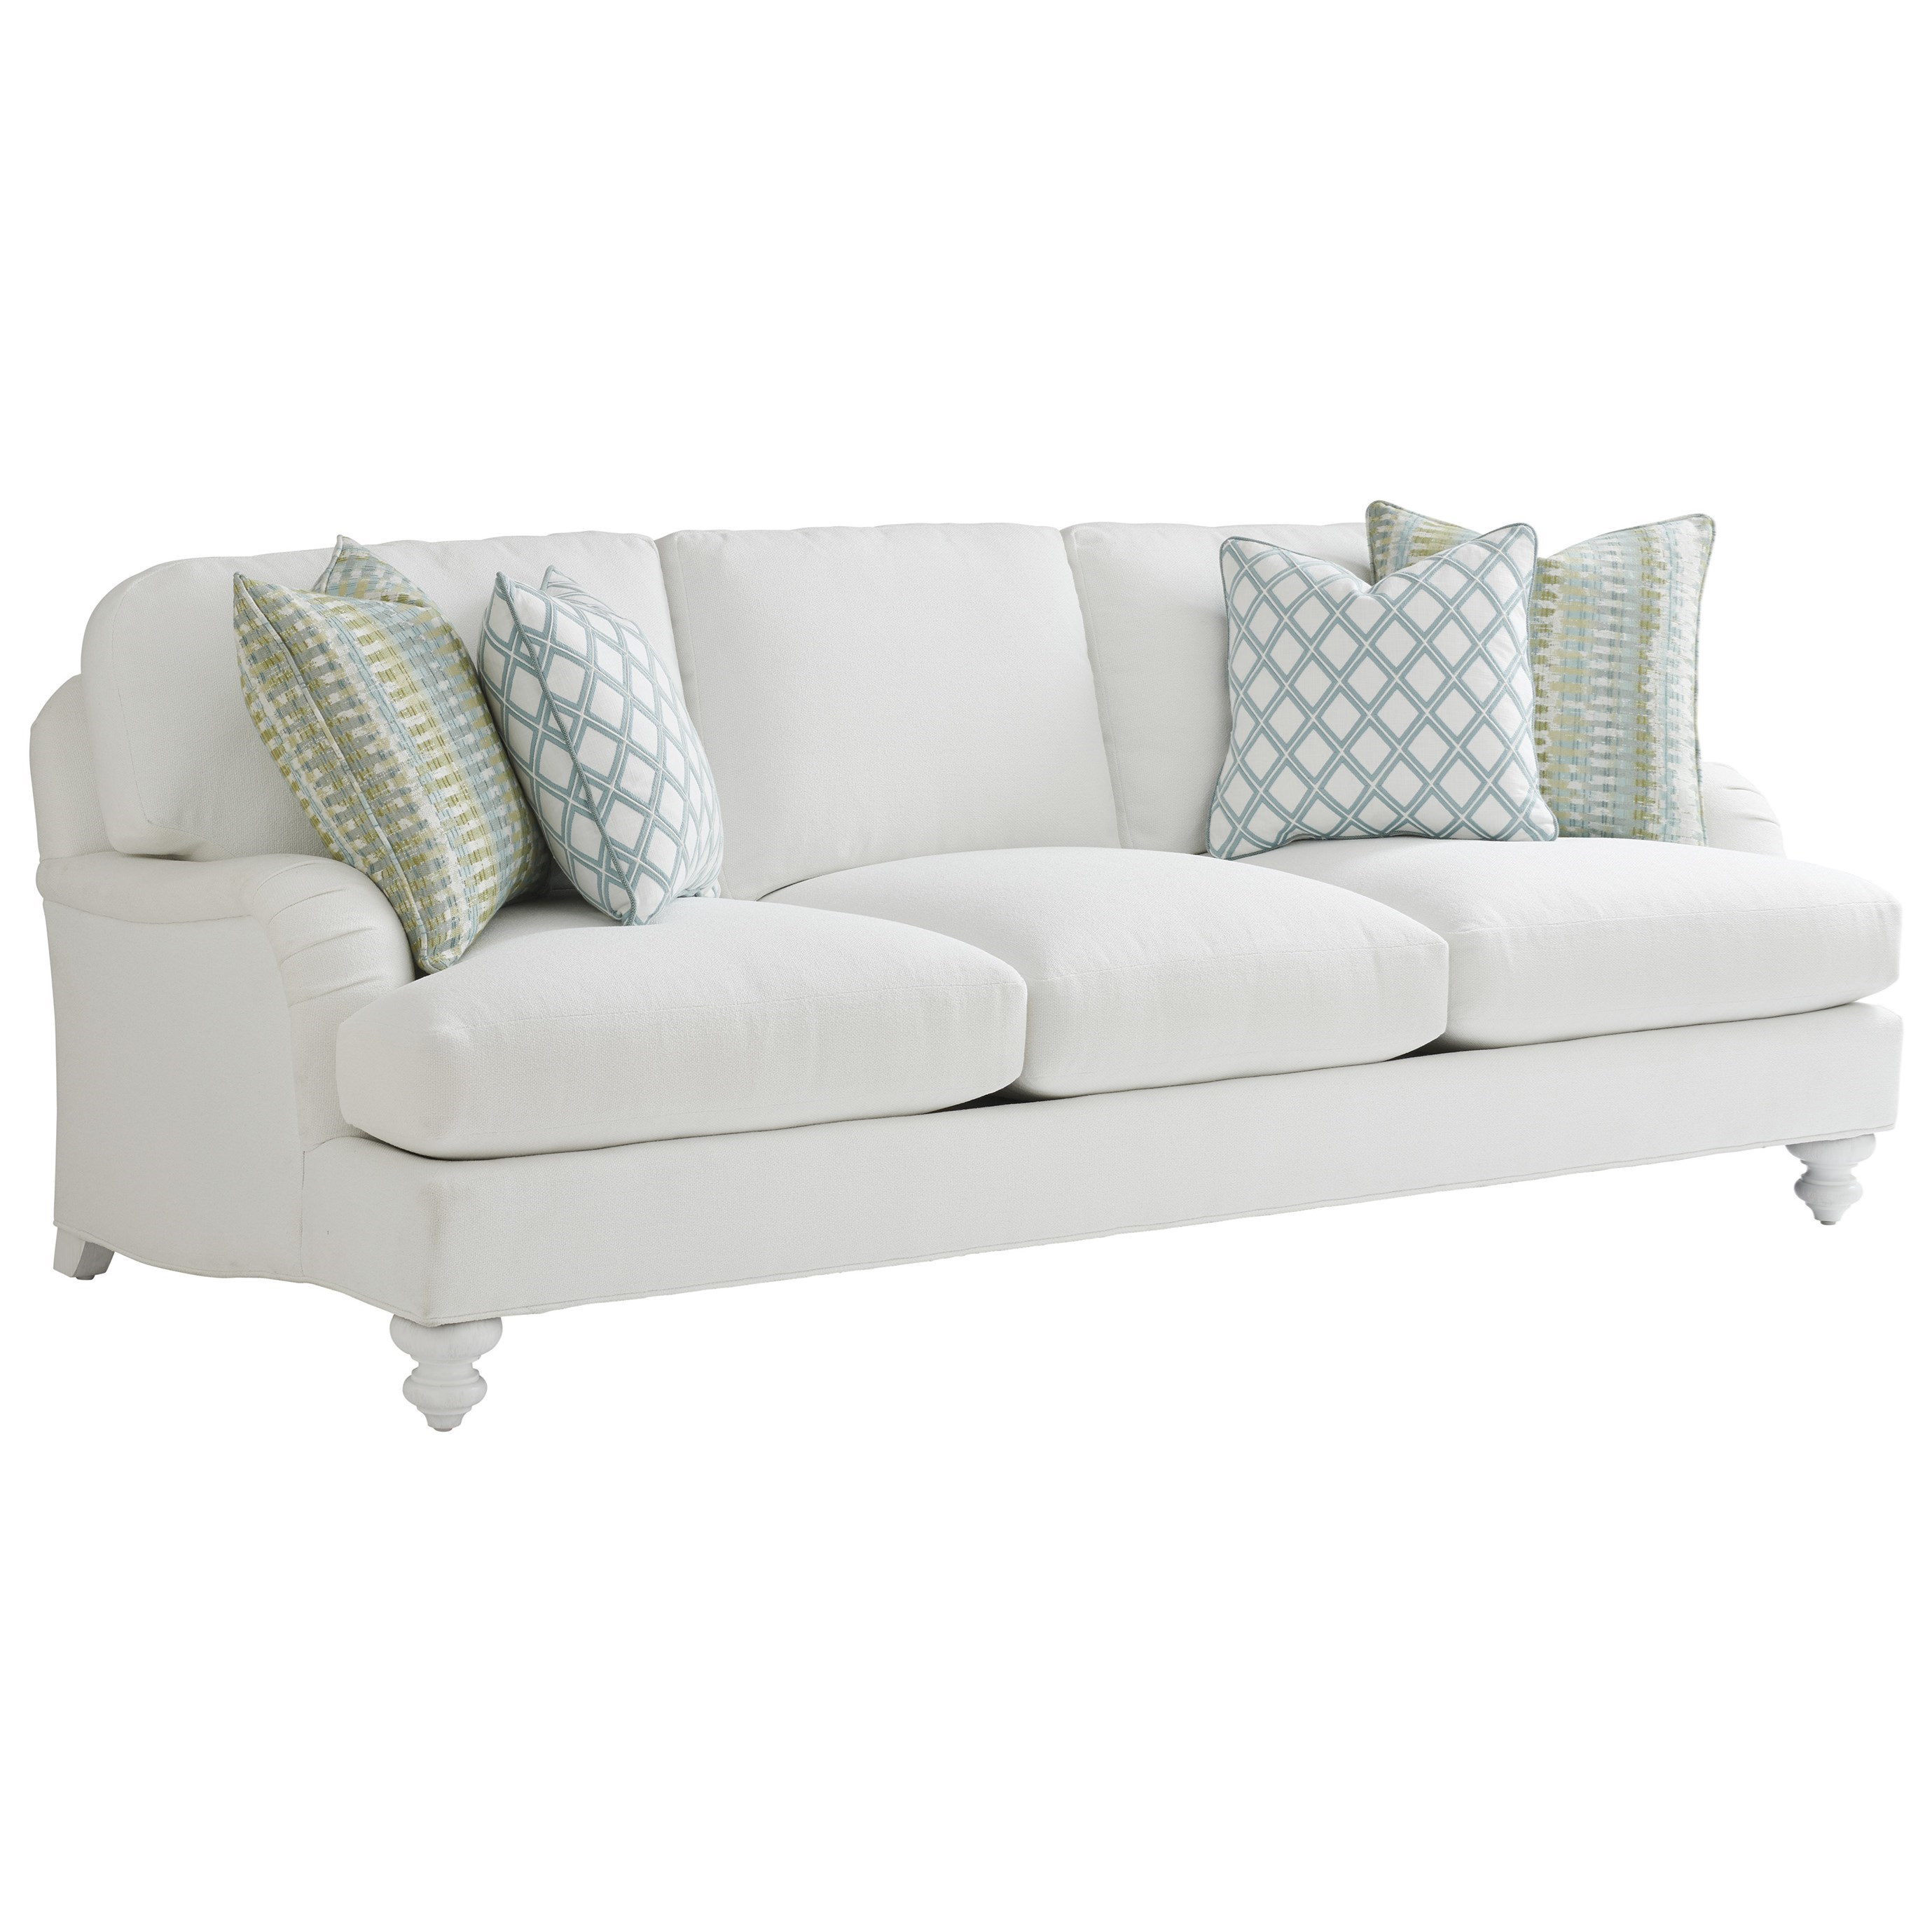 Ocean Breeze Gilmore Sofa by Tommy Bahama Home at Baer's Furniture